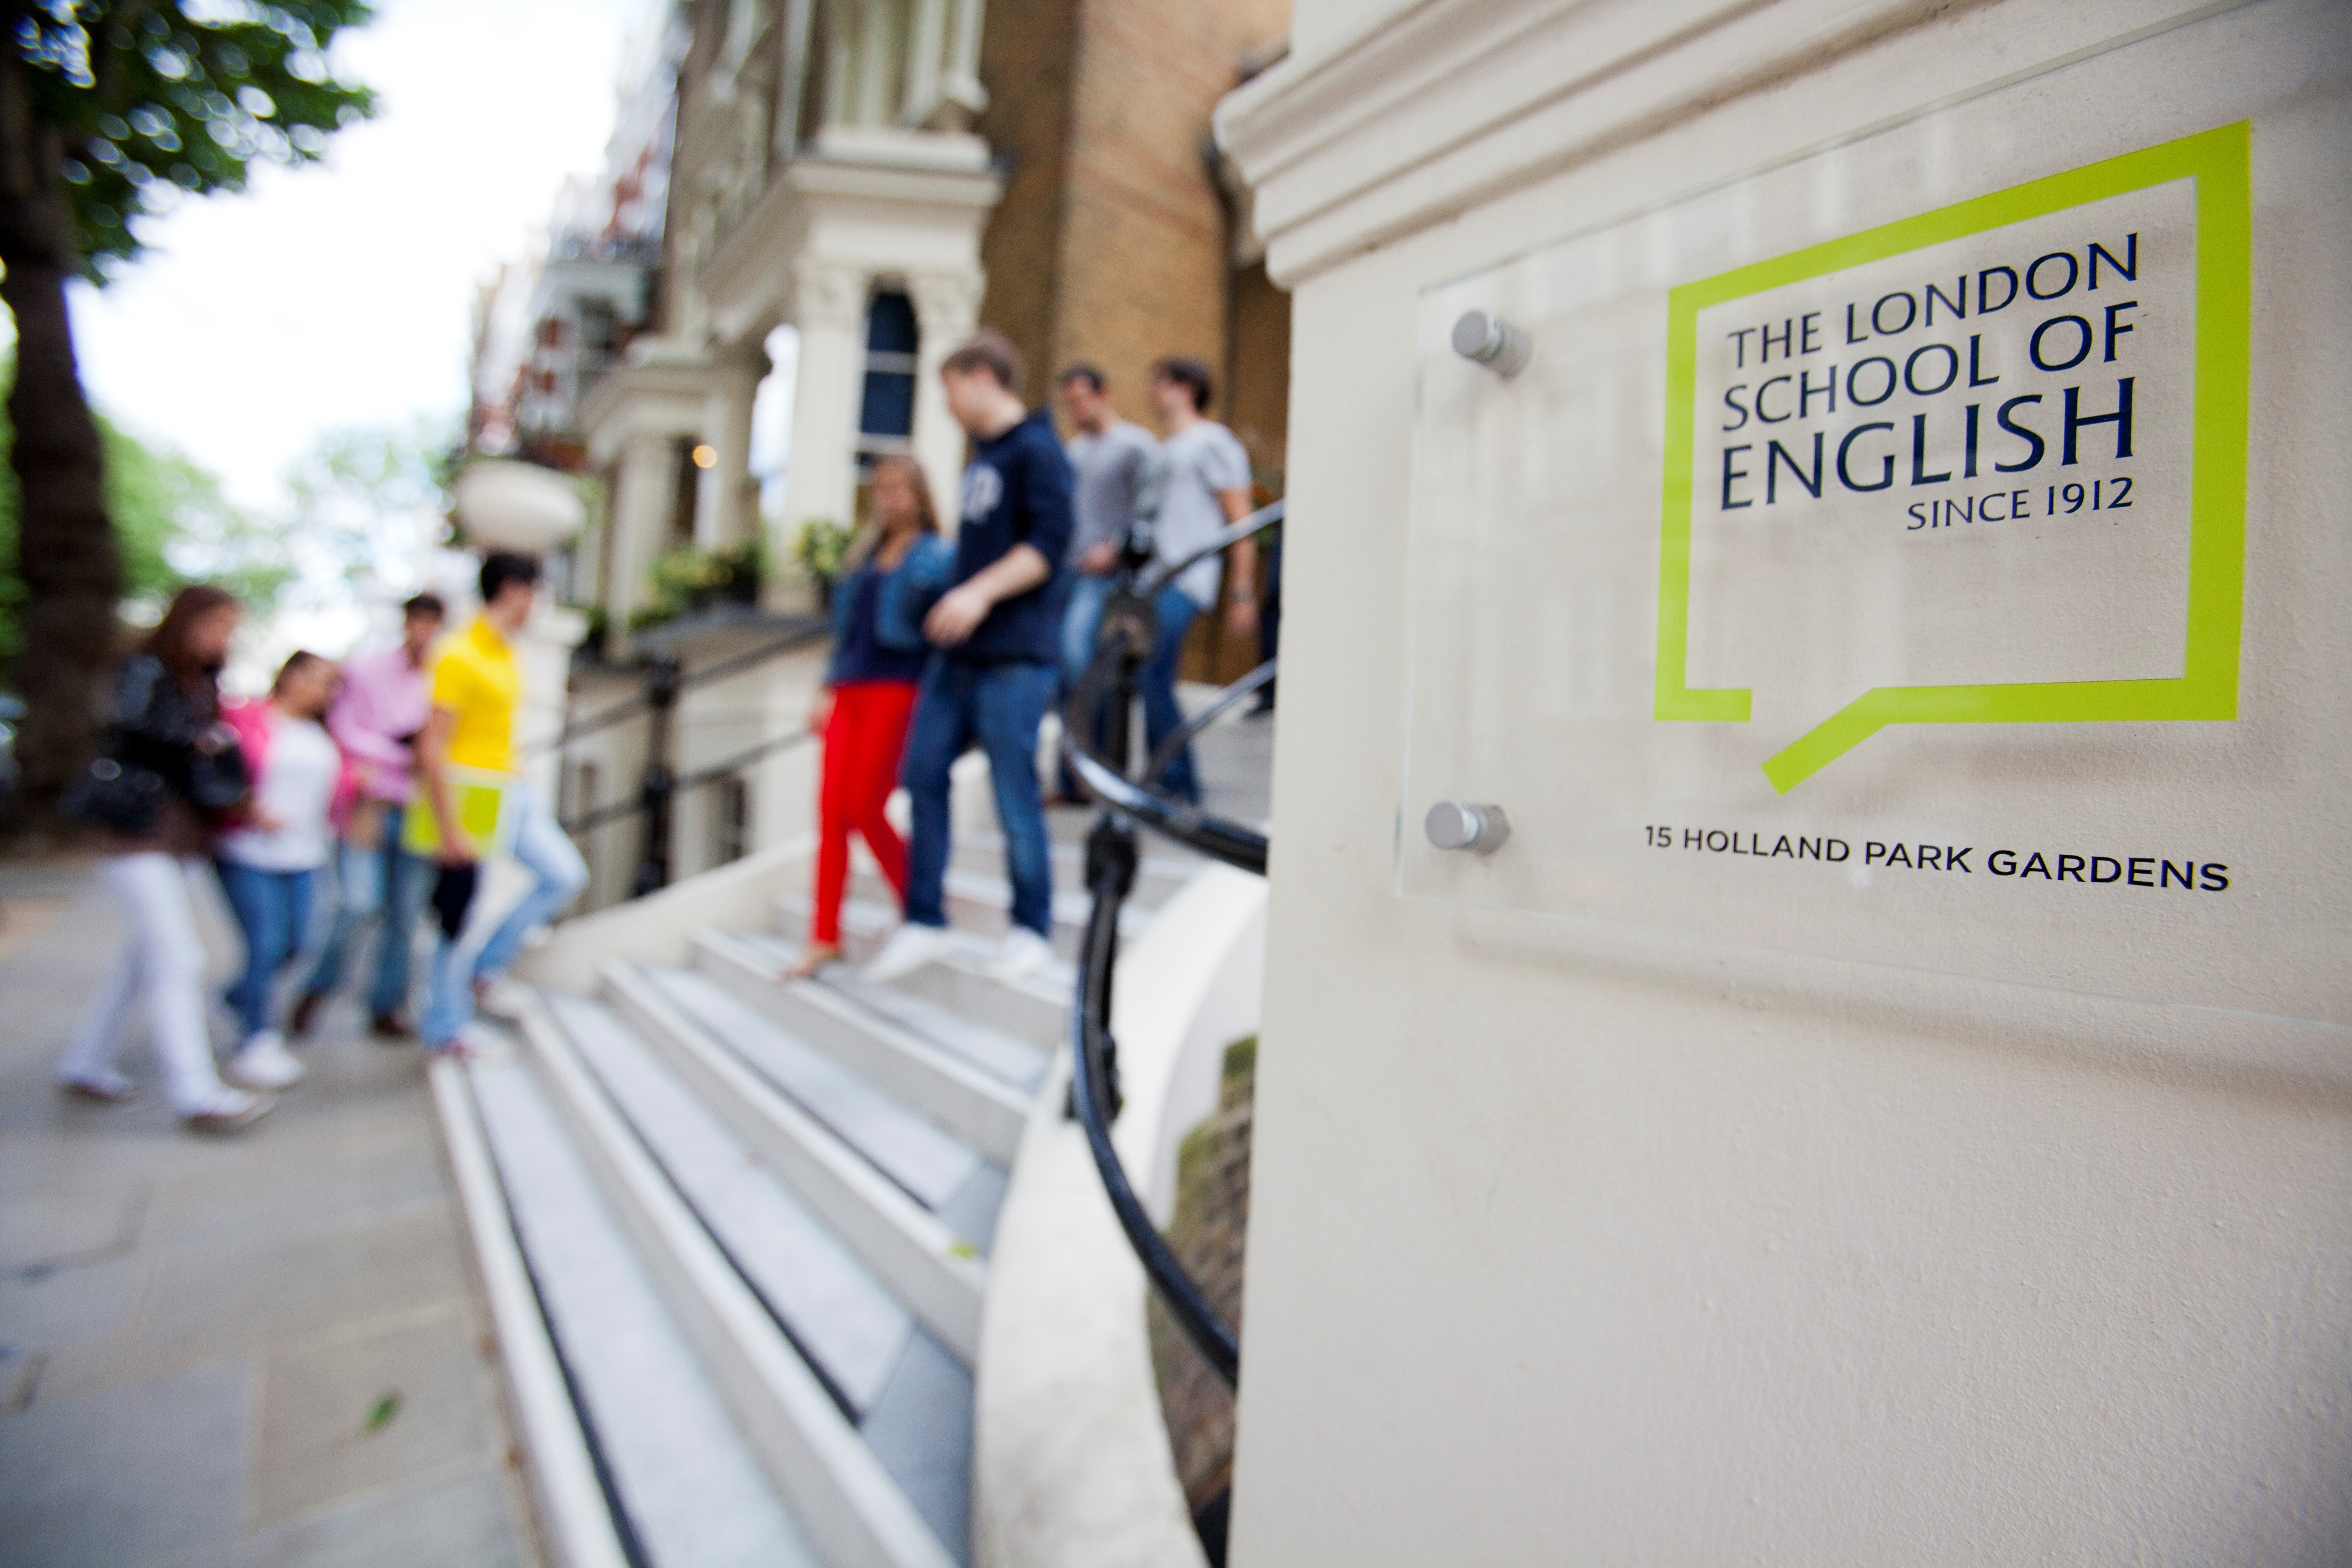 How The London School of English uses company reviews to turn clients into brand advocates